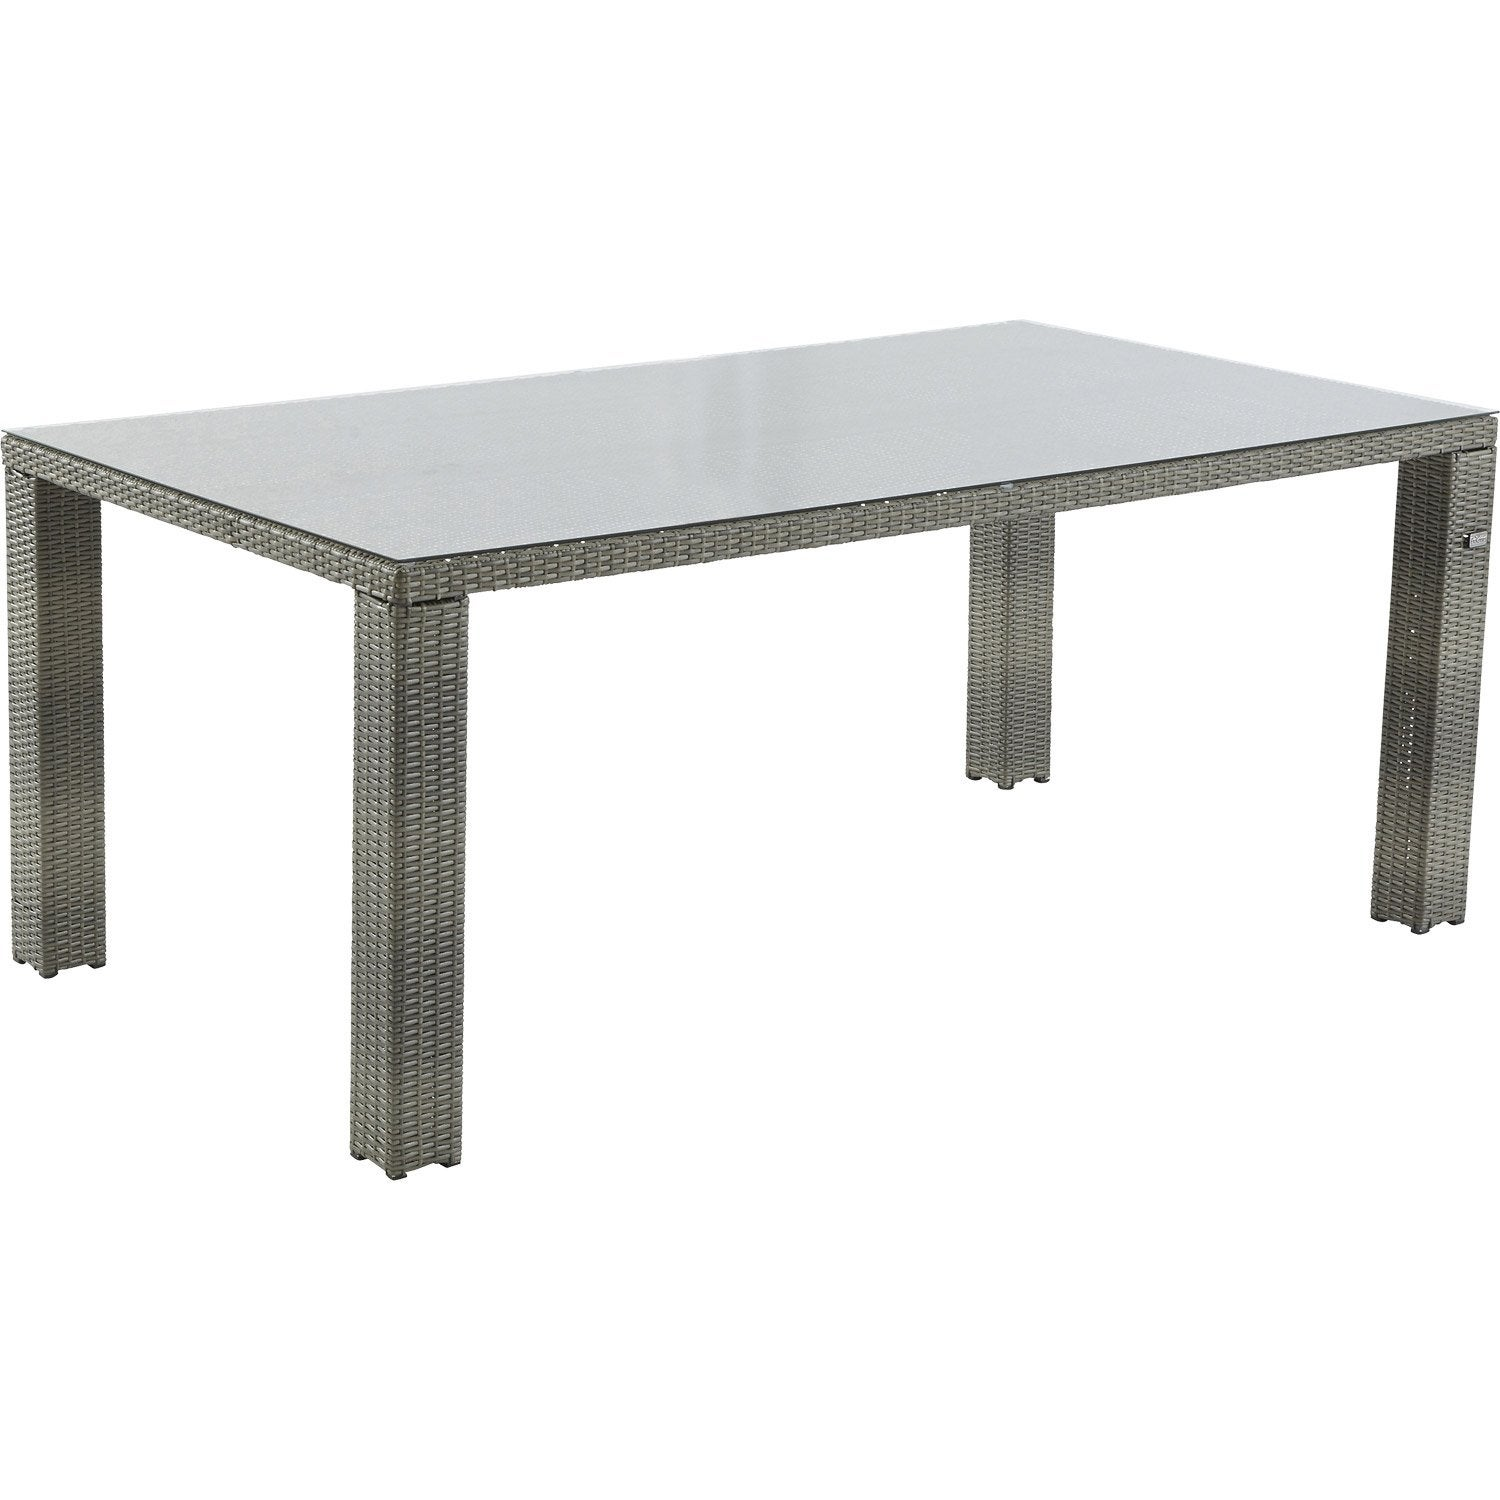 Table de jardin faro rectangulaire gris patin 8 personnes for Table de nuit leroy merlin